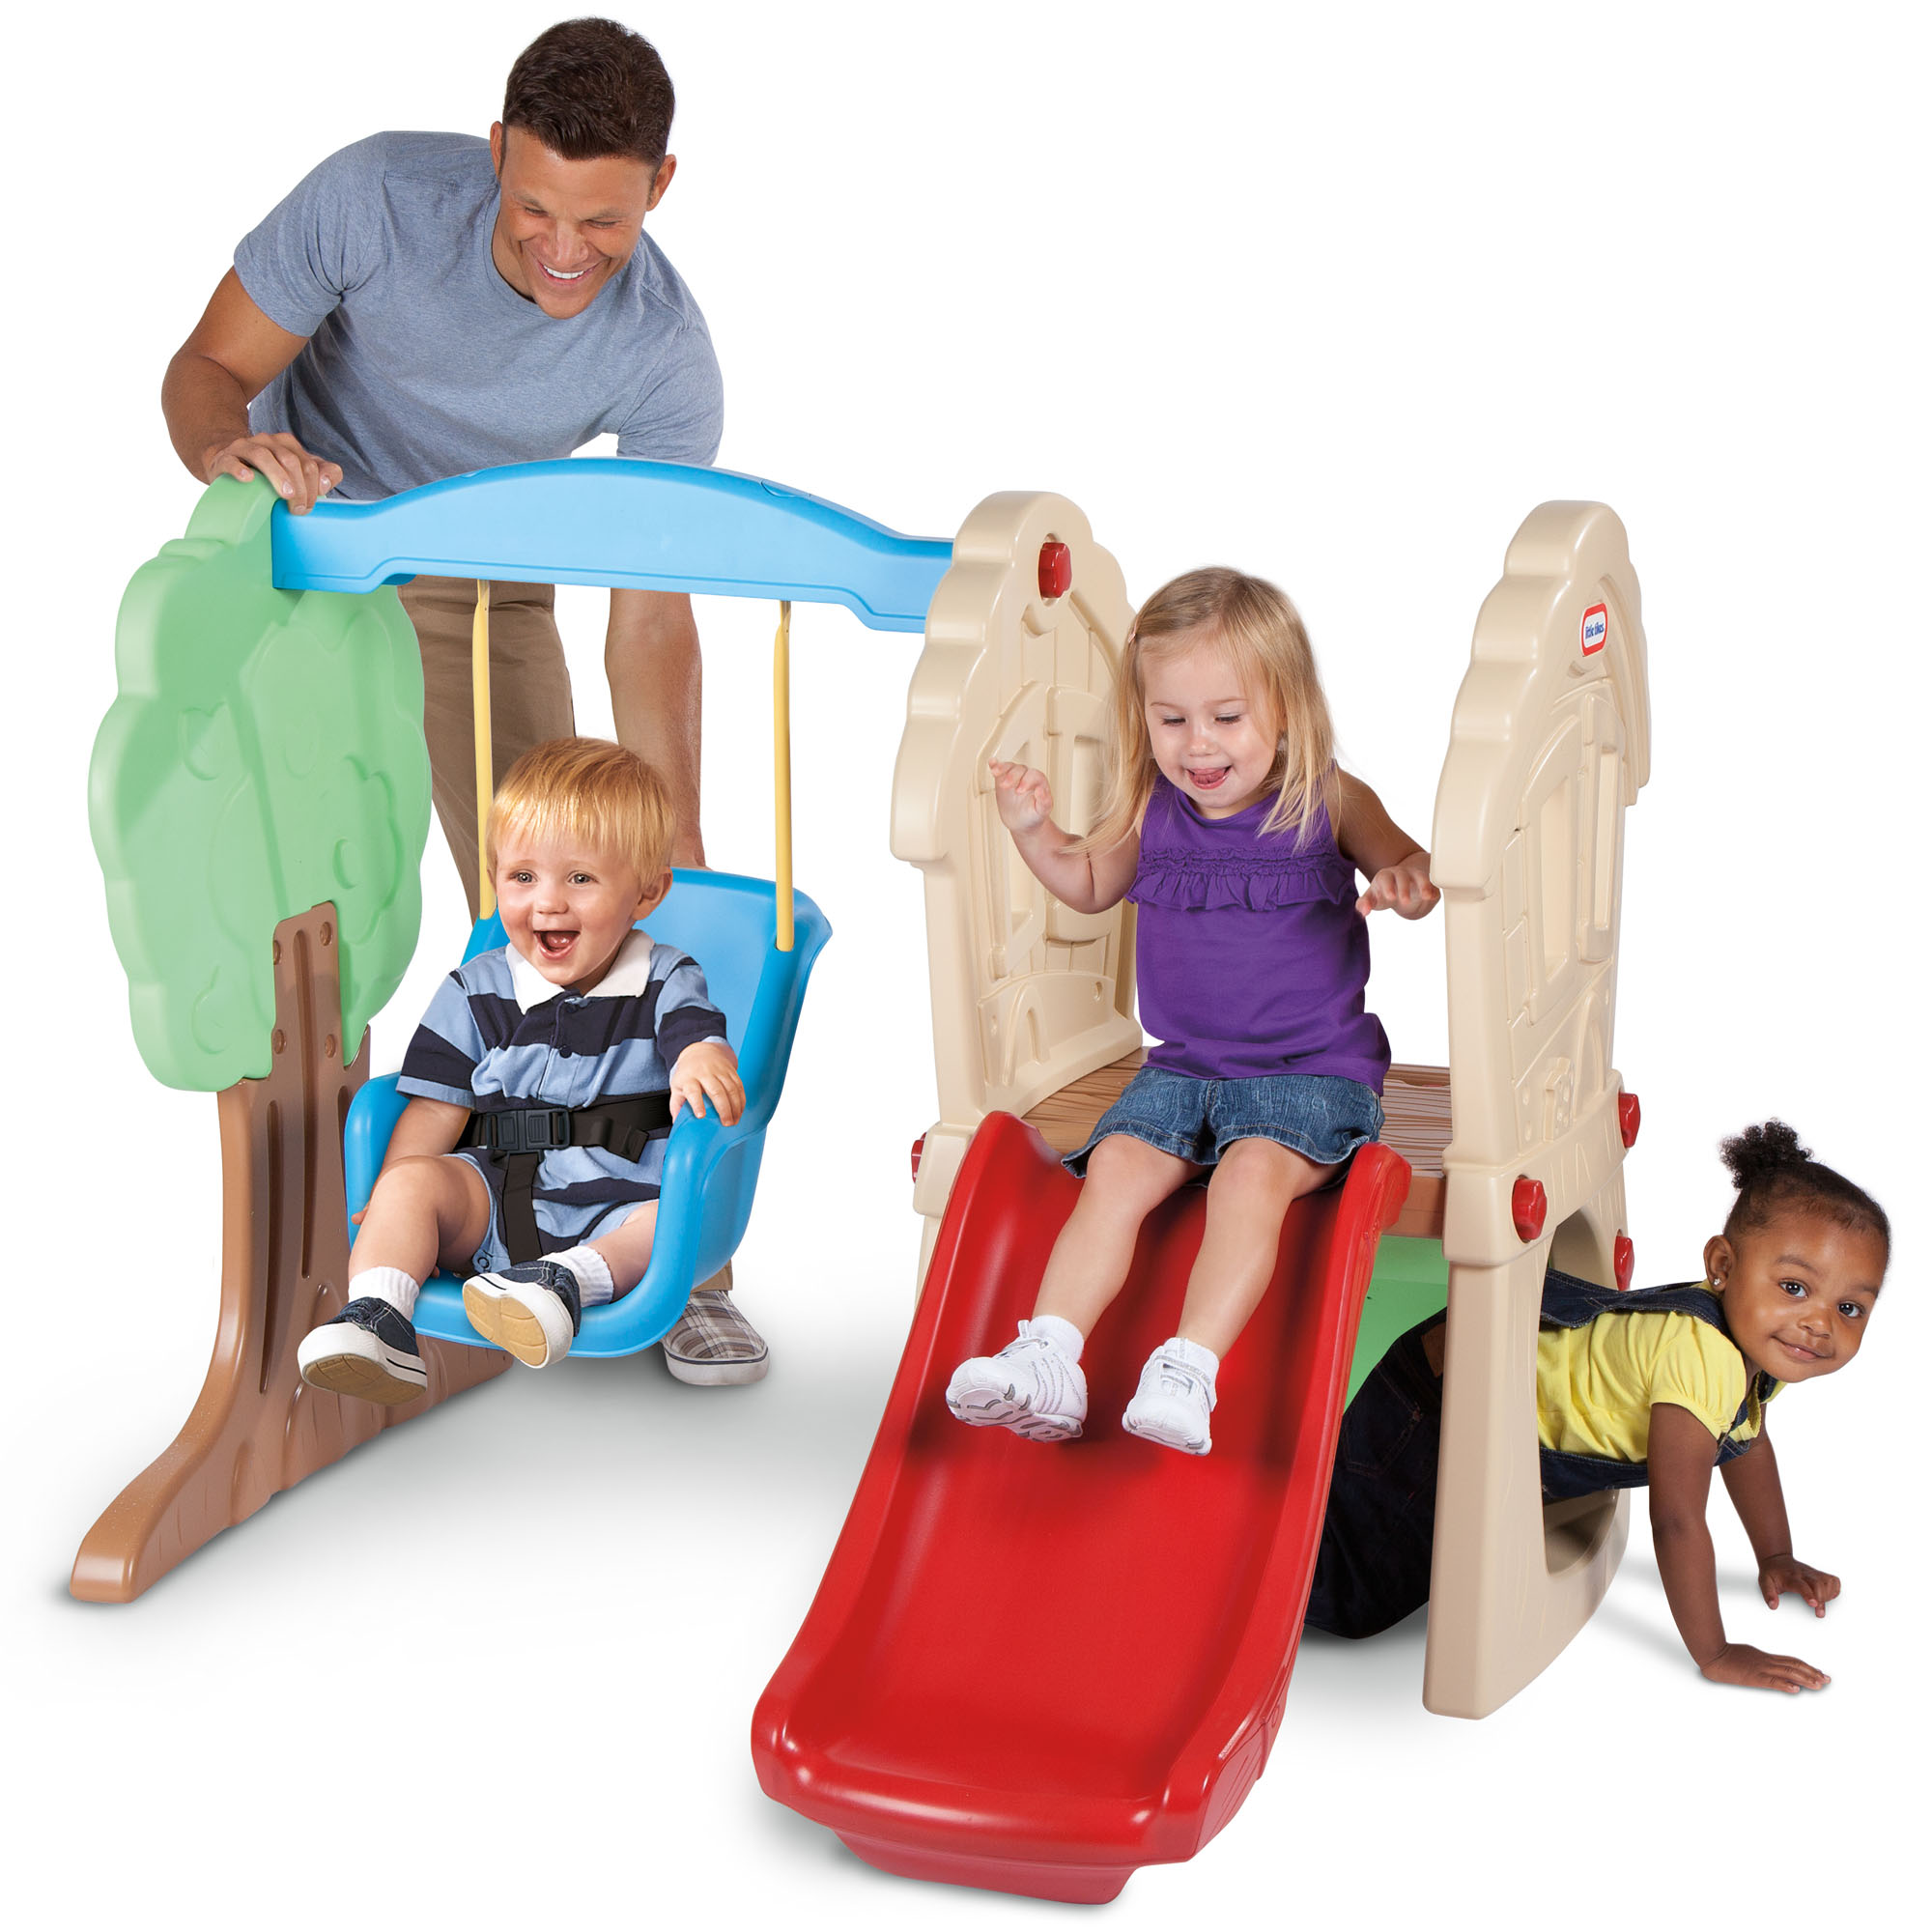 Little Tikes Hide & Seek Climber / Swing ONLY $59.98 (Reg $140)